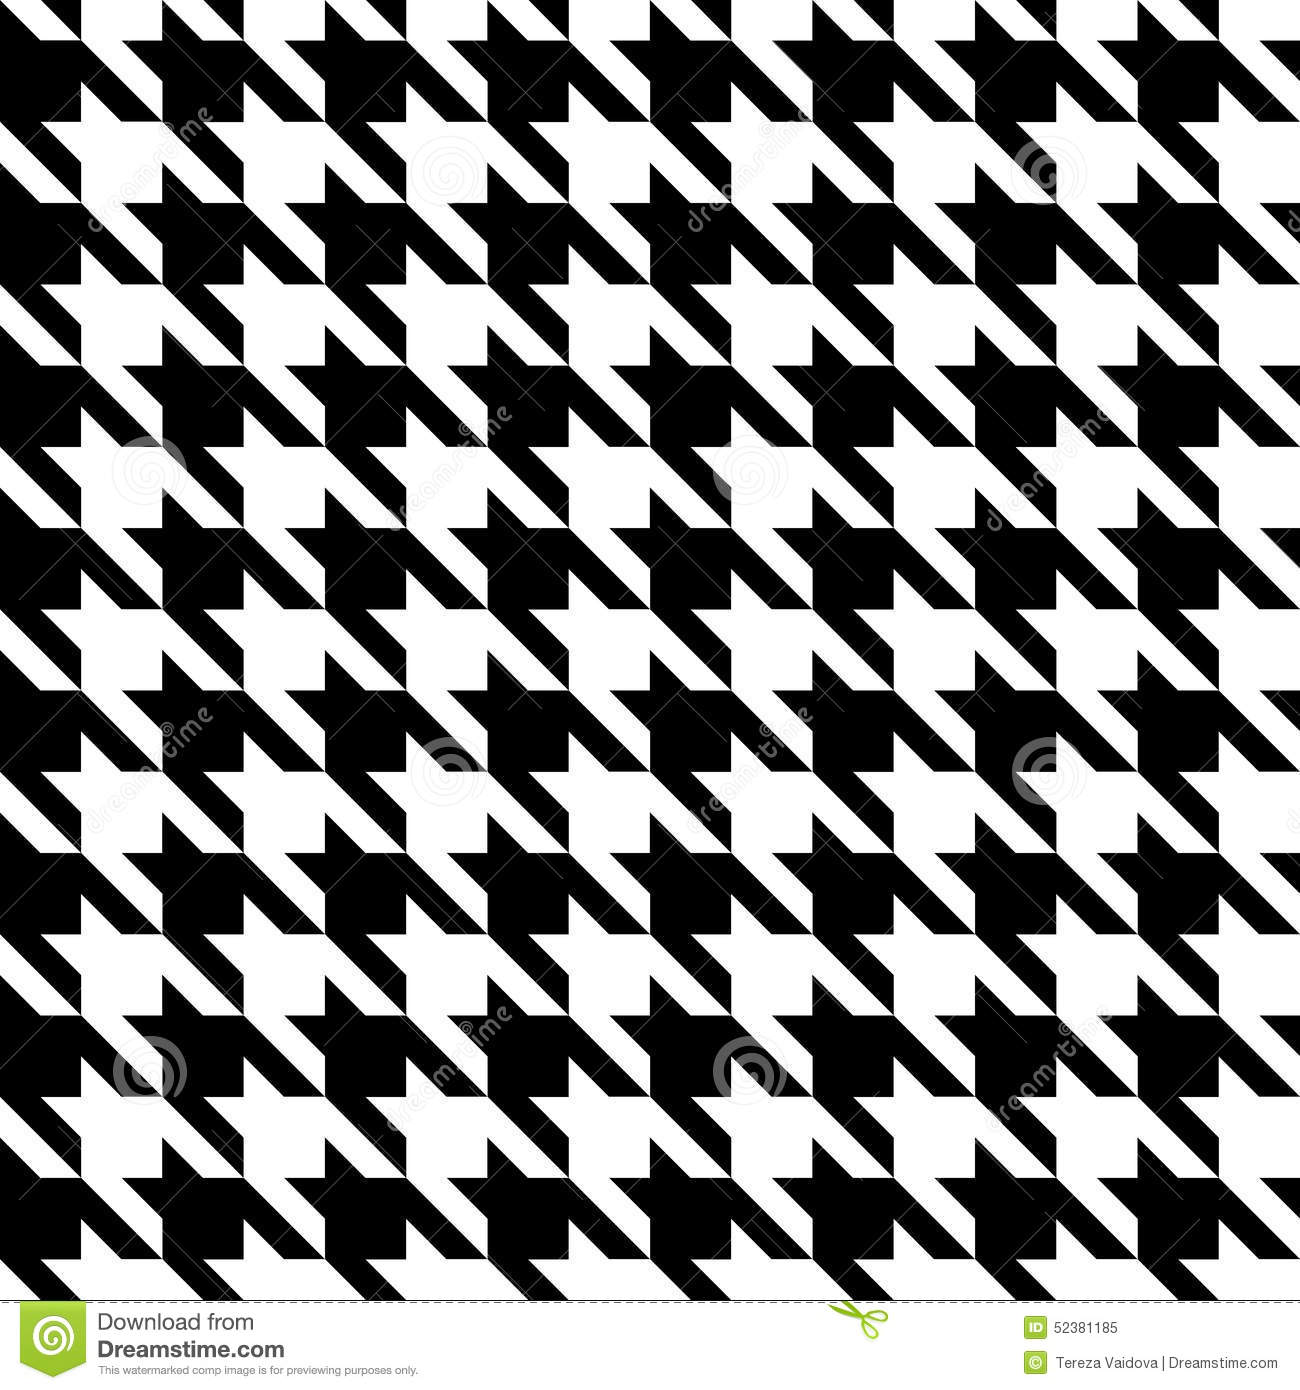 Houndstooth Check Black White Fabric Pattern Texture Stock Vector